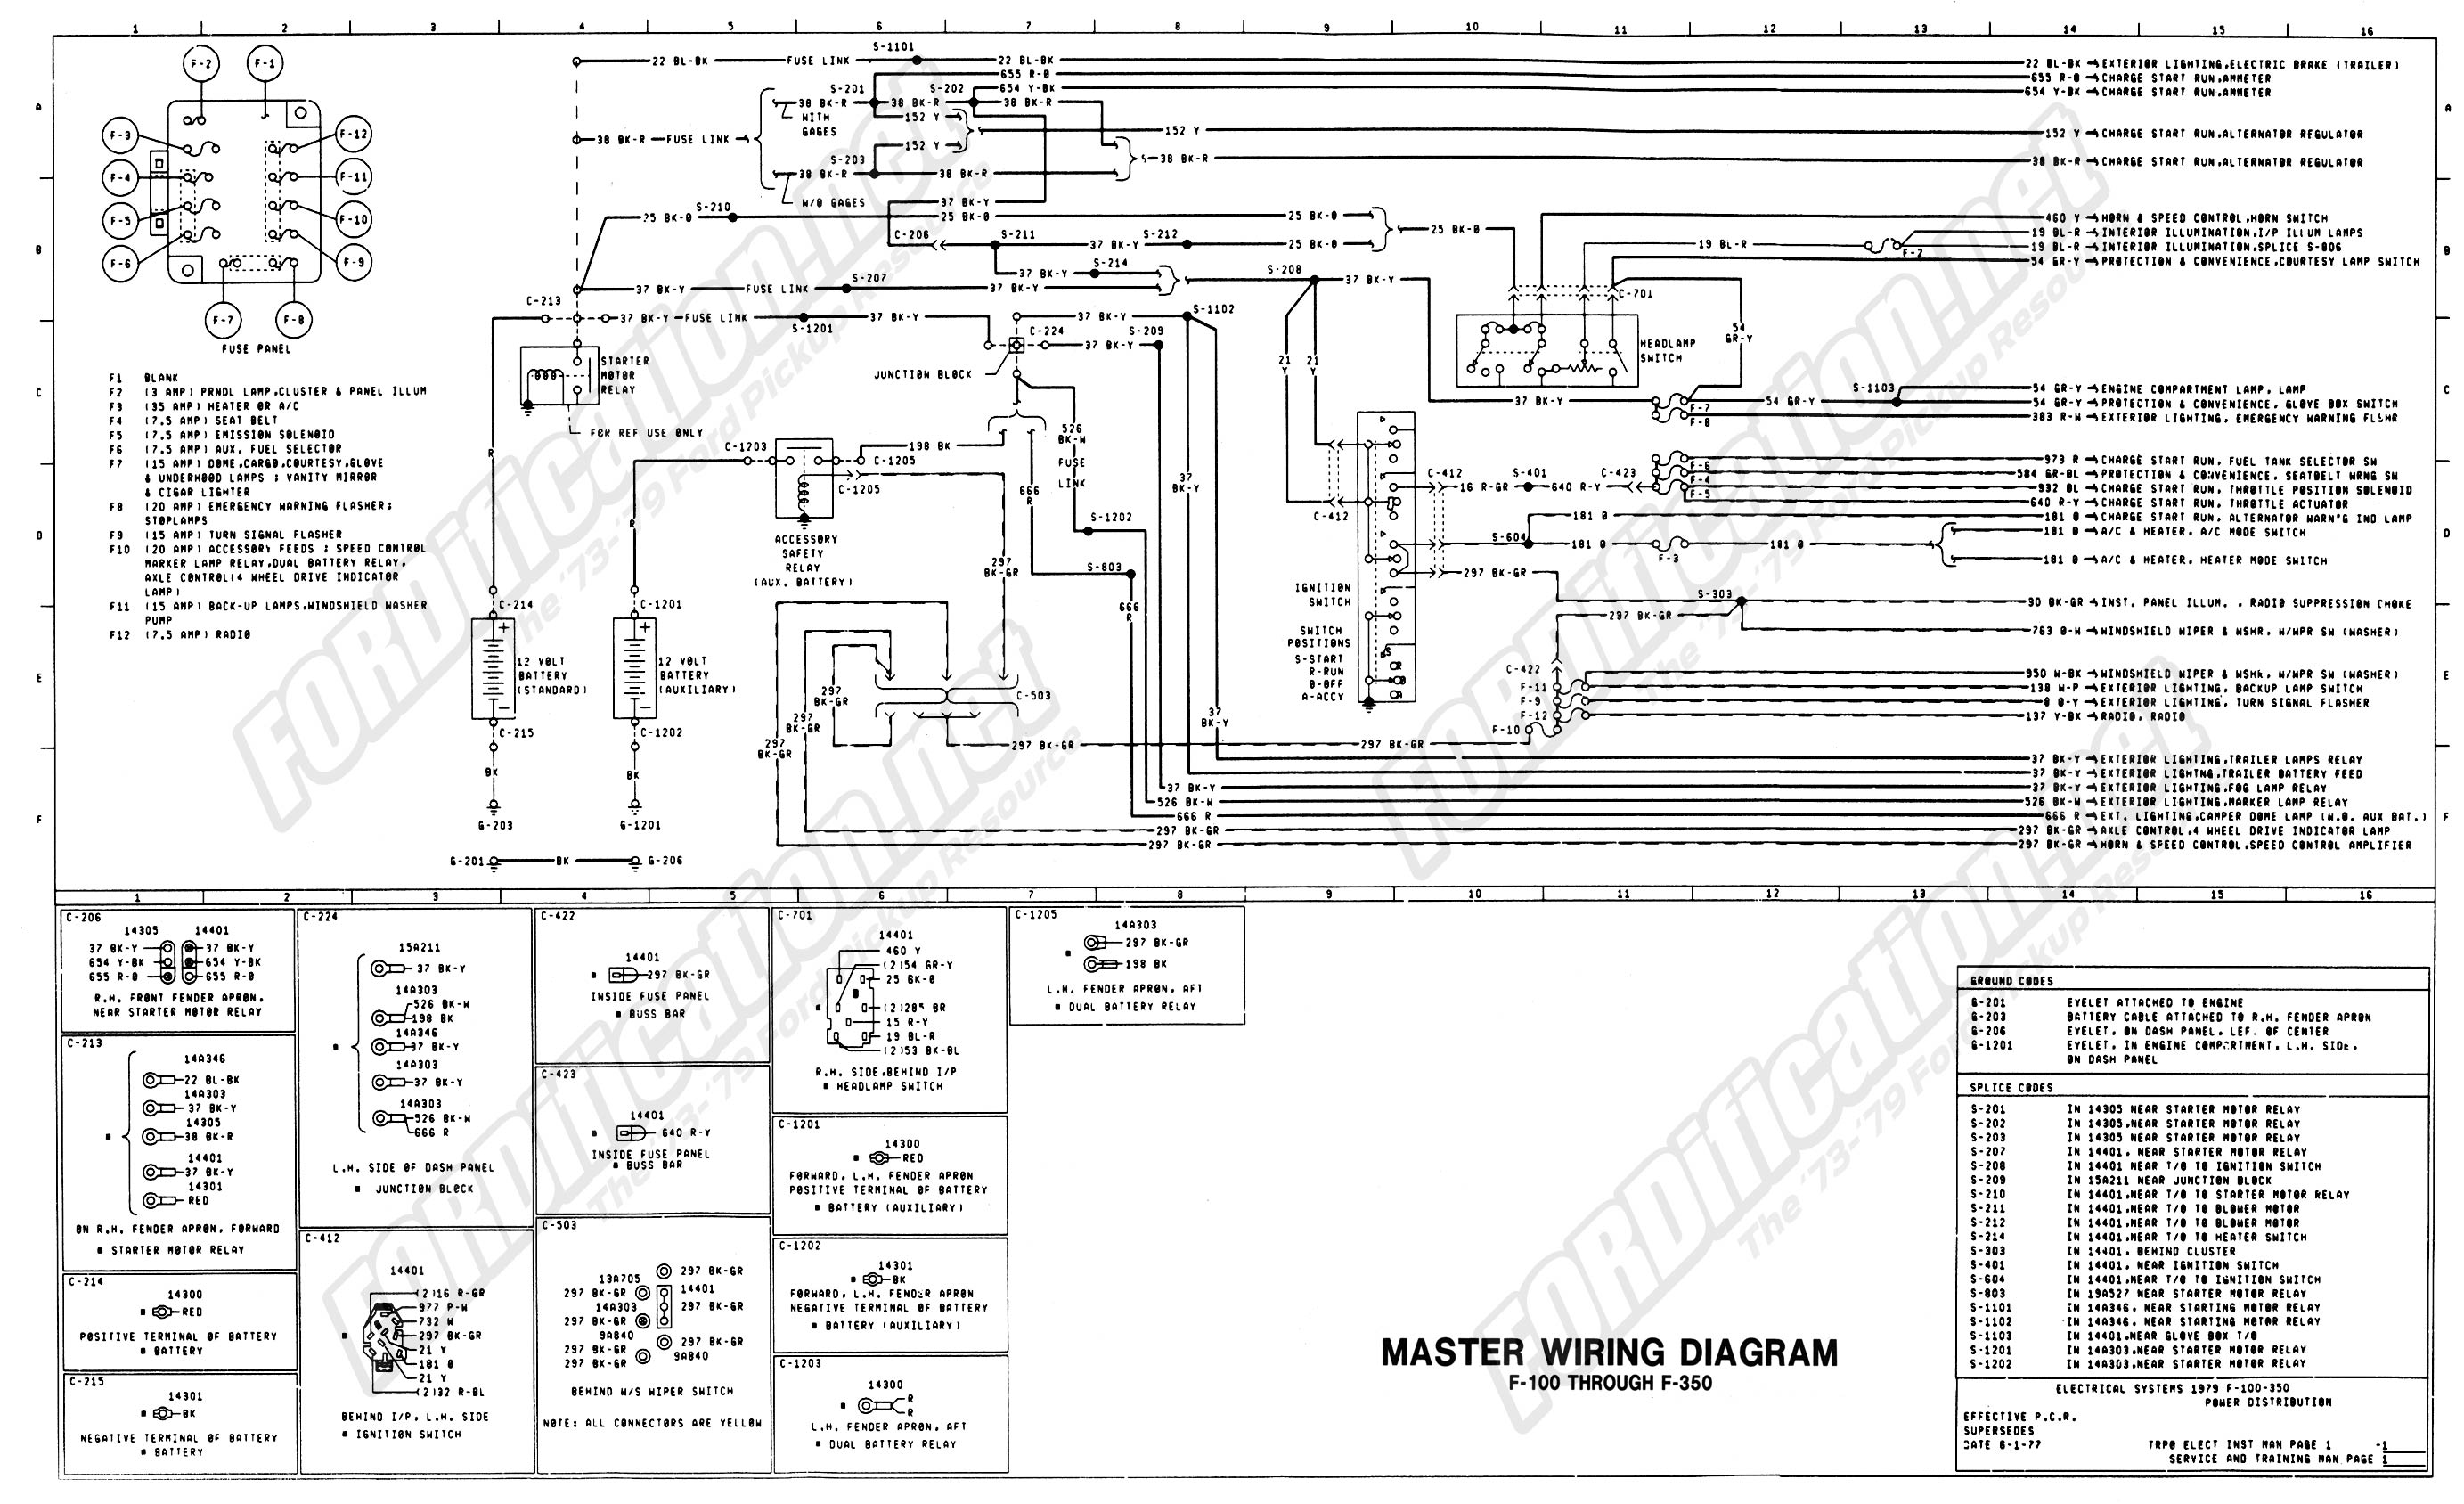 1973 1979 ford truck wiring diagrams & schematics fordification net ford f100 wiring diagram 1974 ford truck wiring diagrams #23